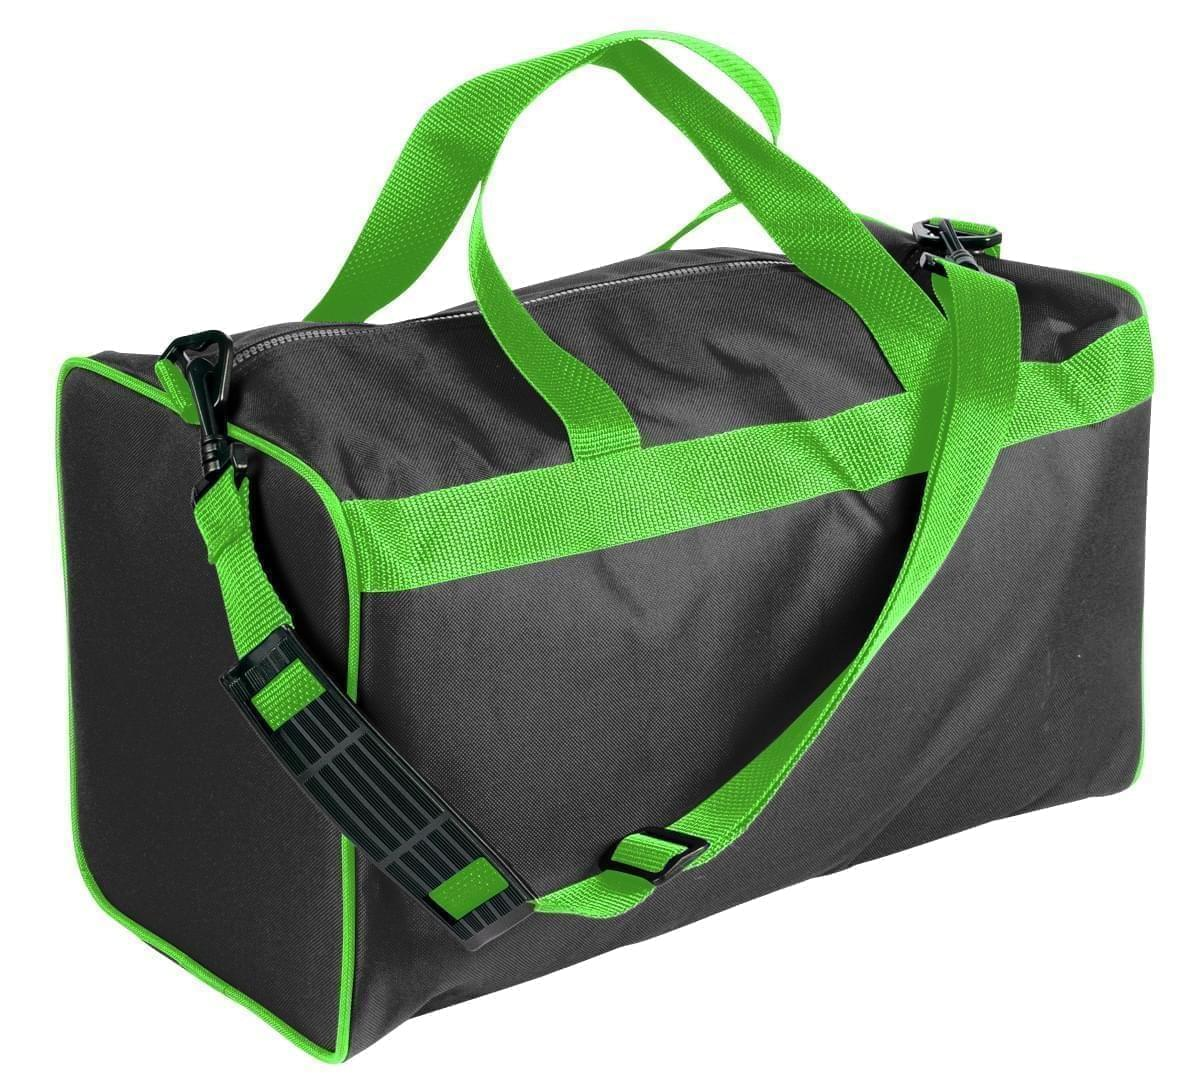 USA Made Nylon Poly Weekend Duffles, Black-Lime, WLKX31AAOY